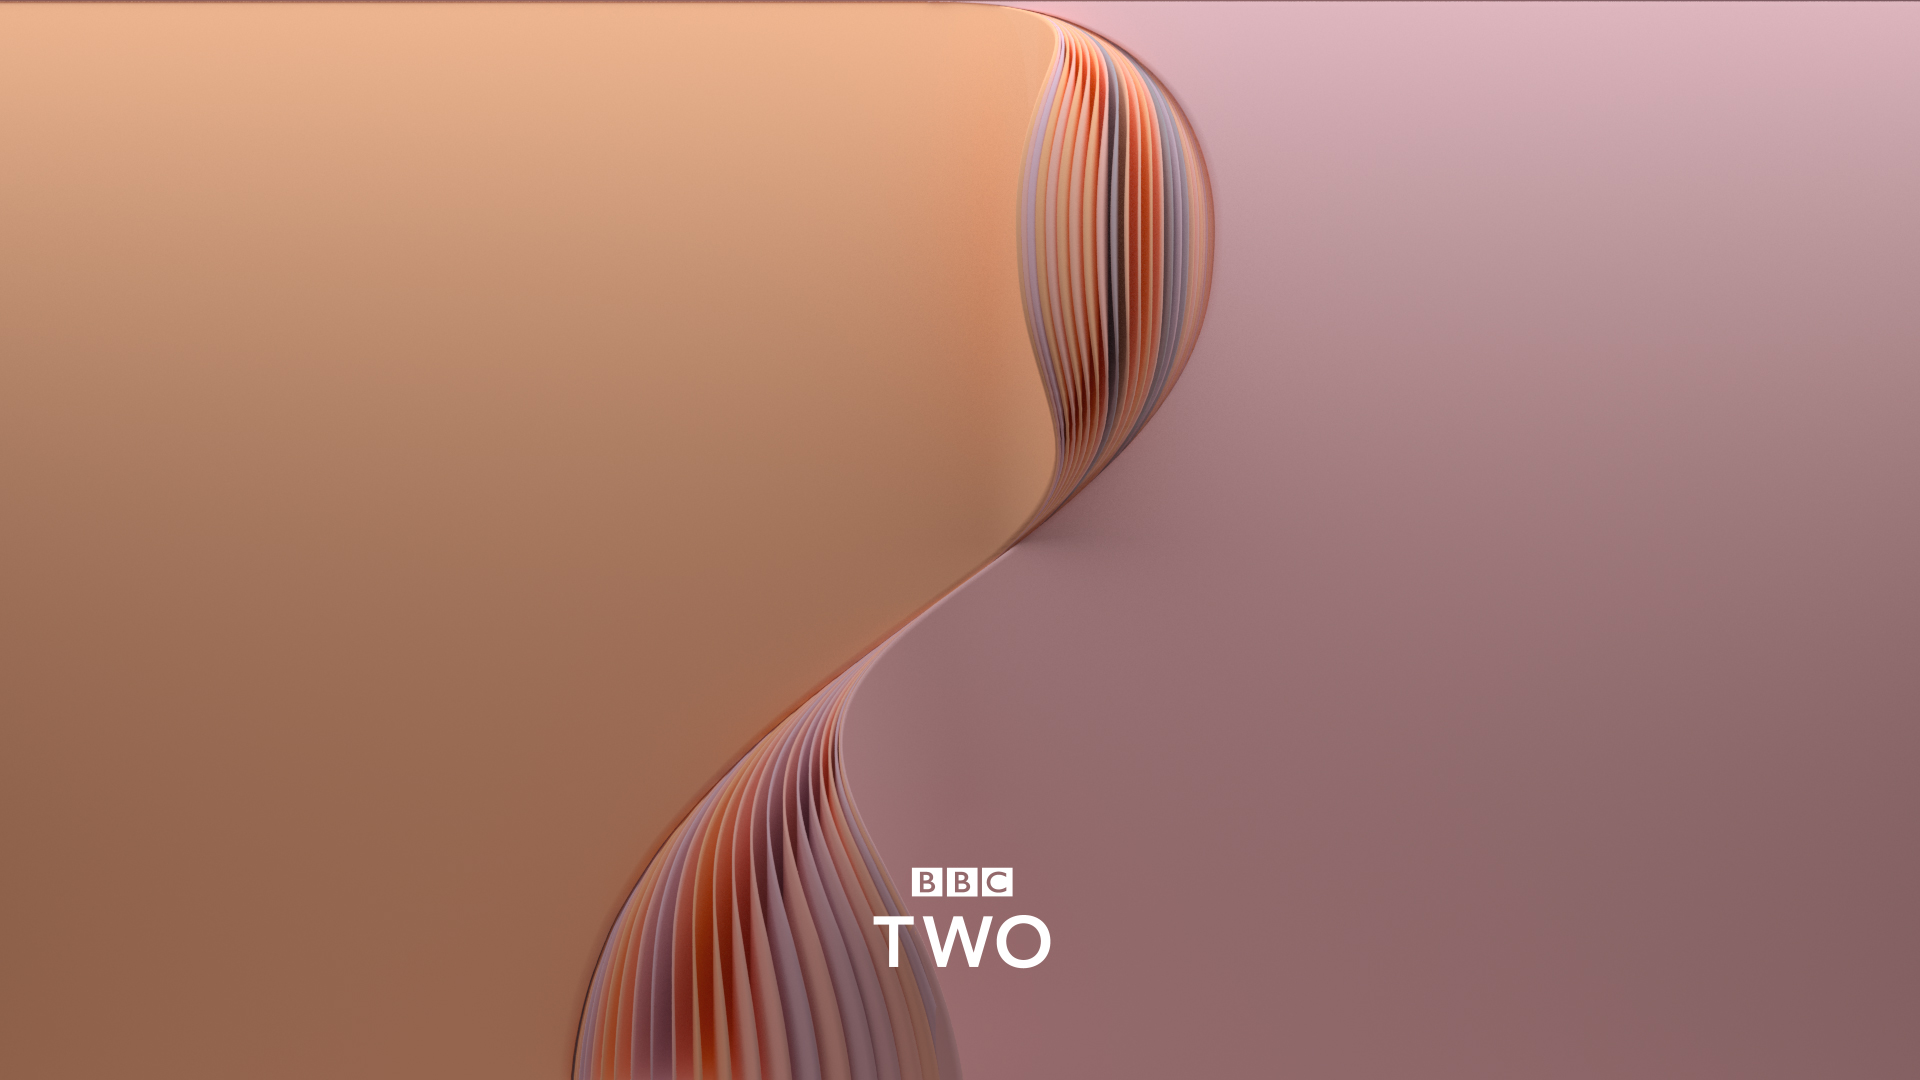 BBC_two_04